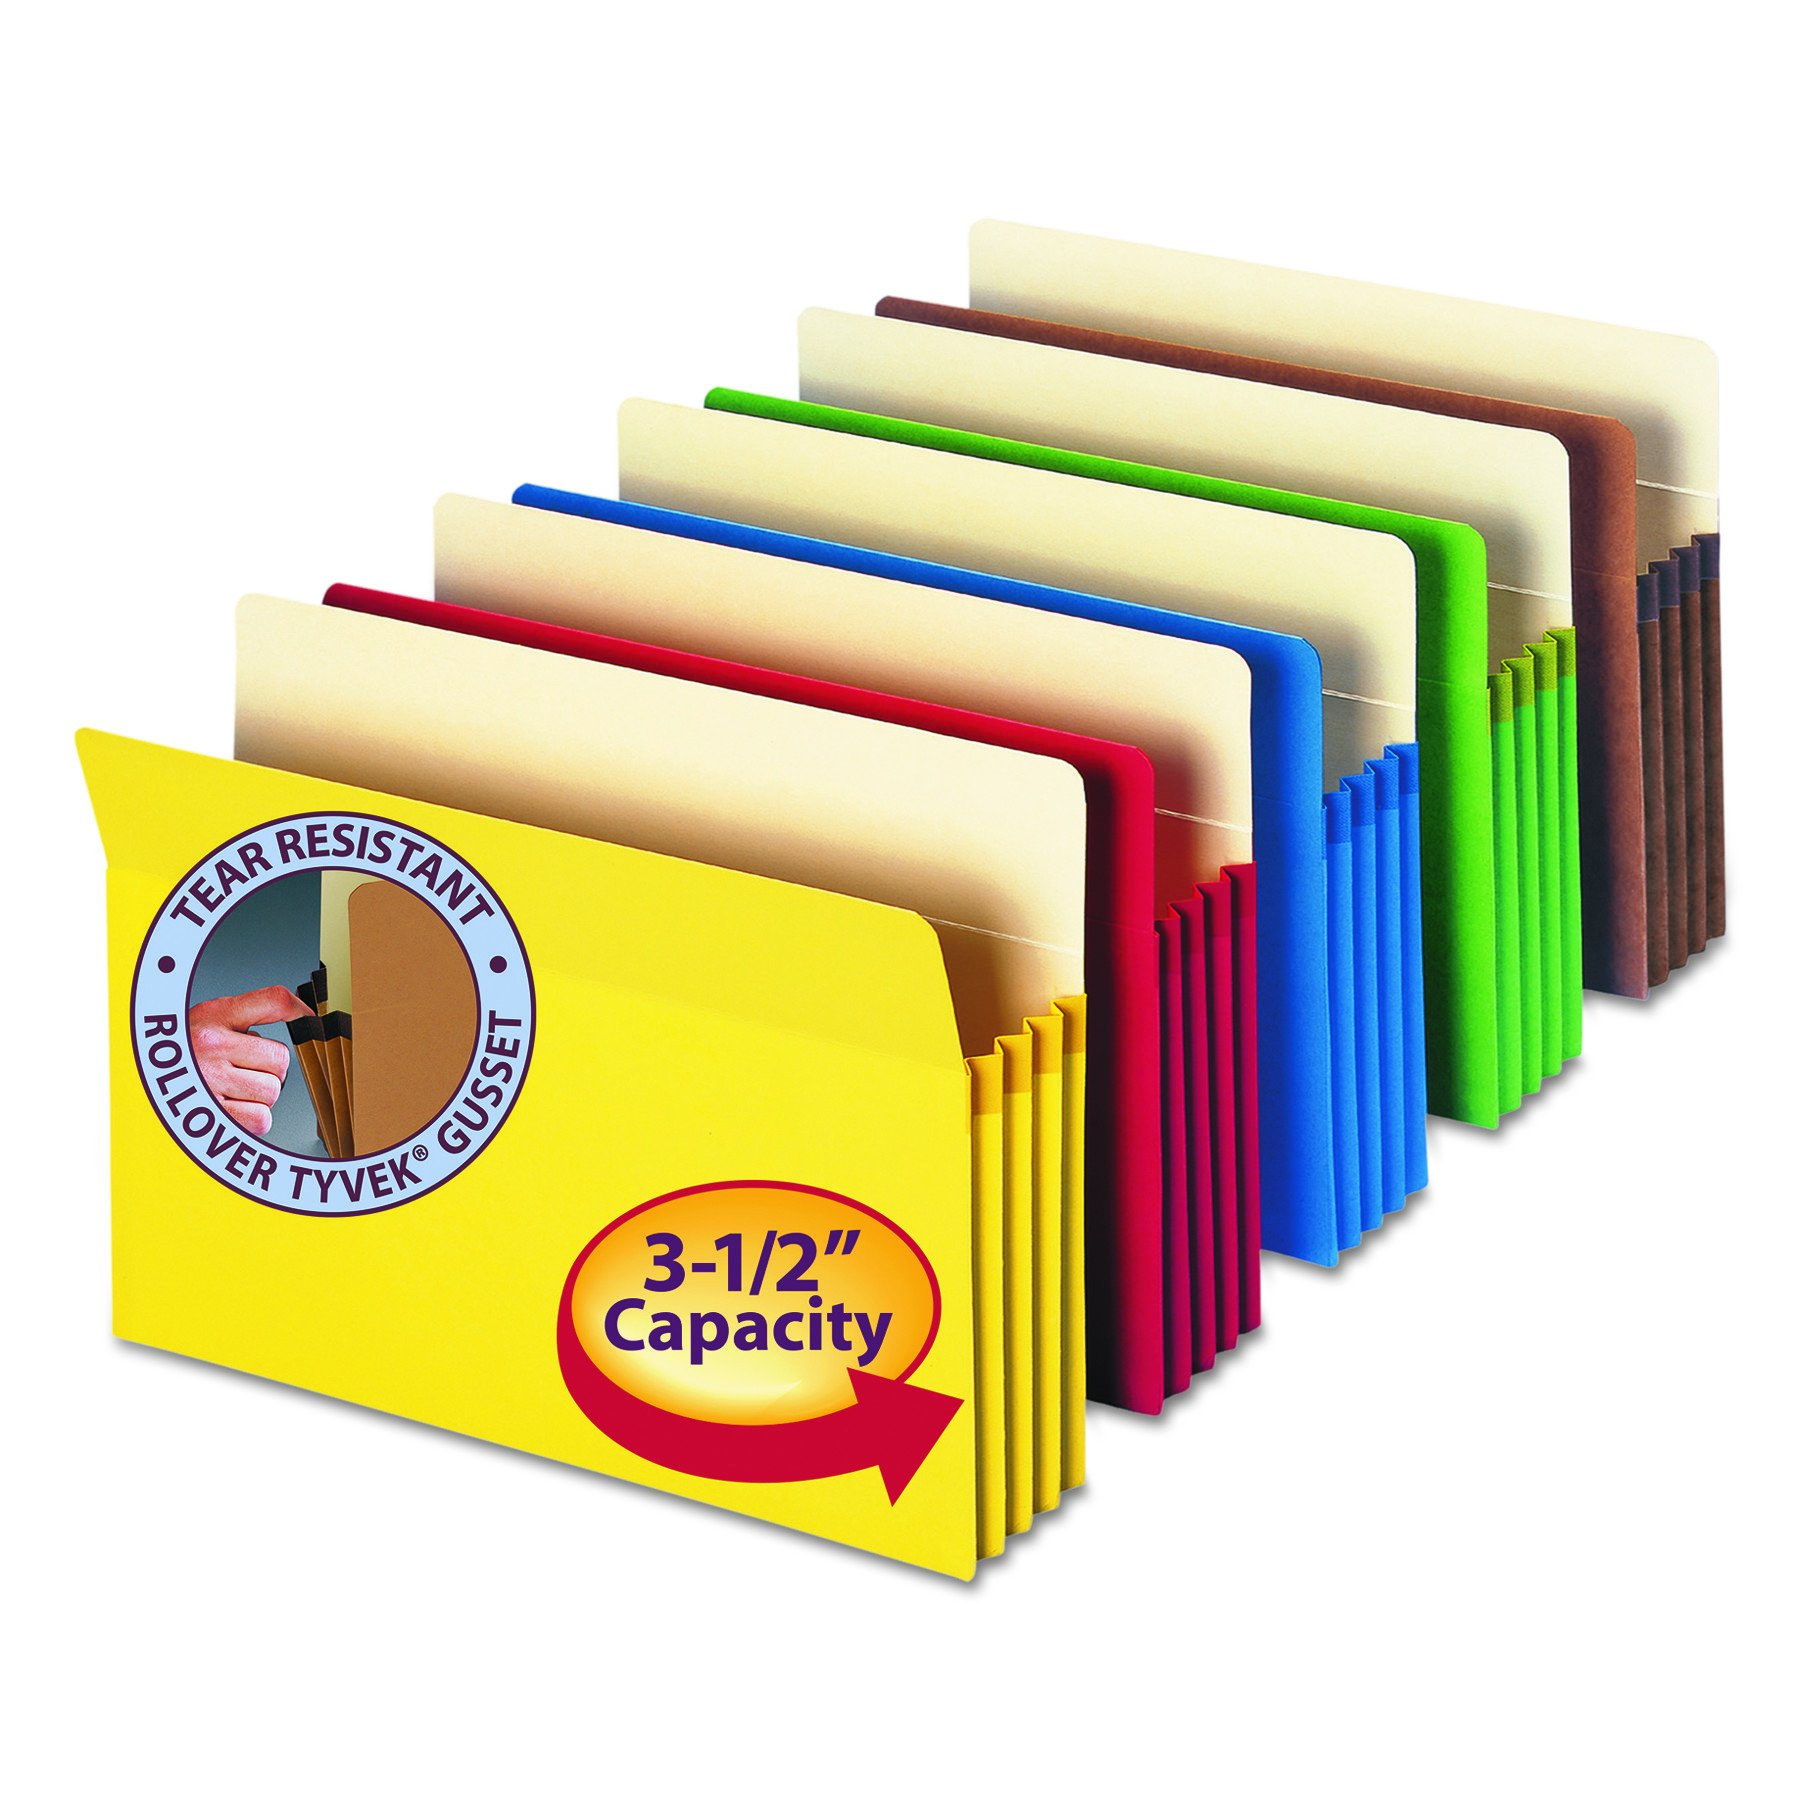 "Smead File Pocket, Straight-Cut Tab, 3-1/2"" Expansion, Letter Size, Assorted Colors, 5 per Pack (73892)"